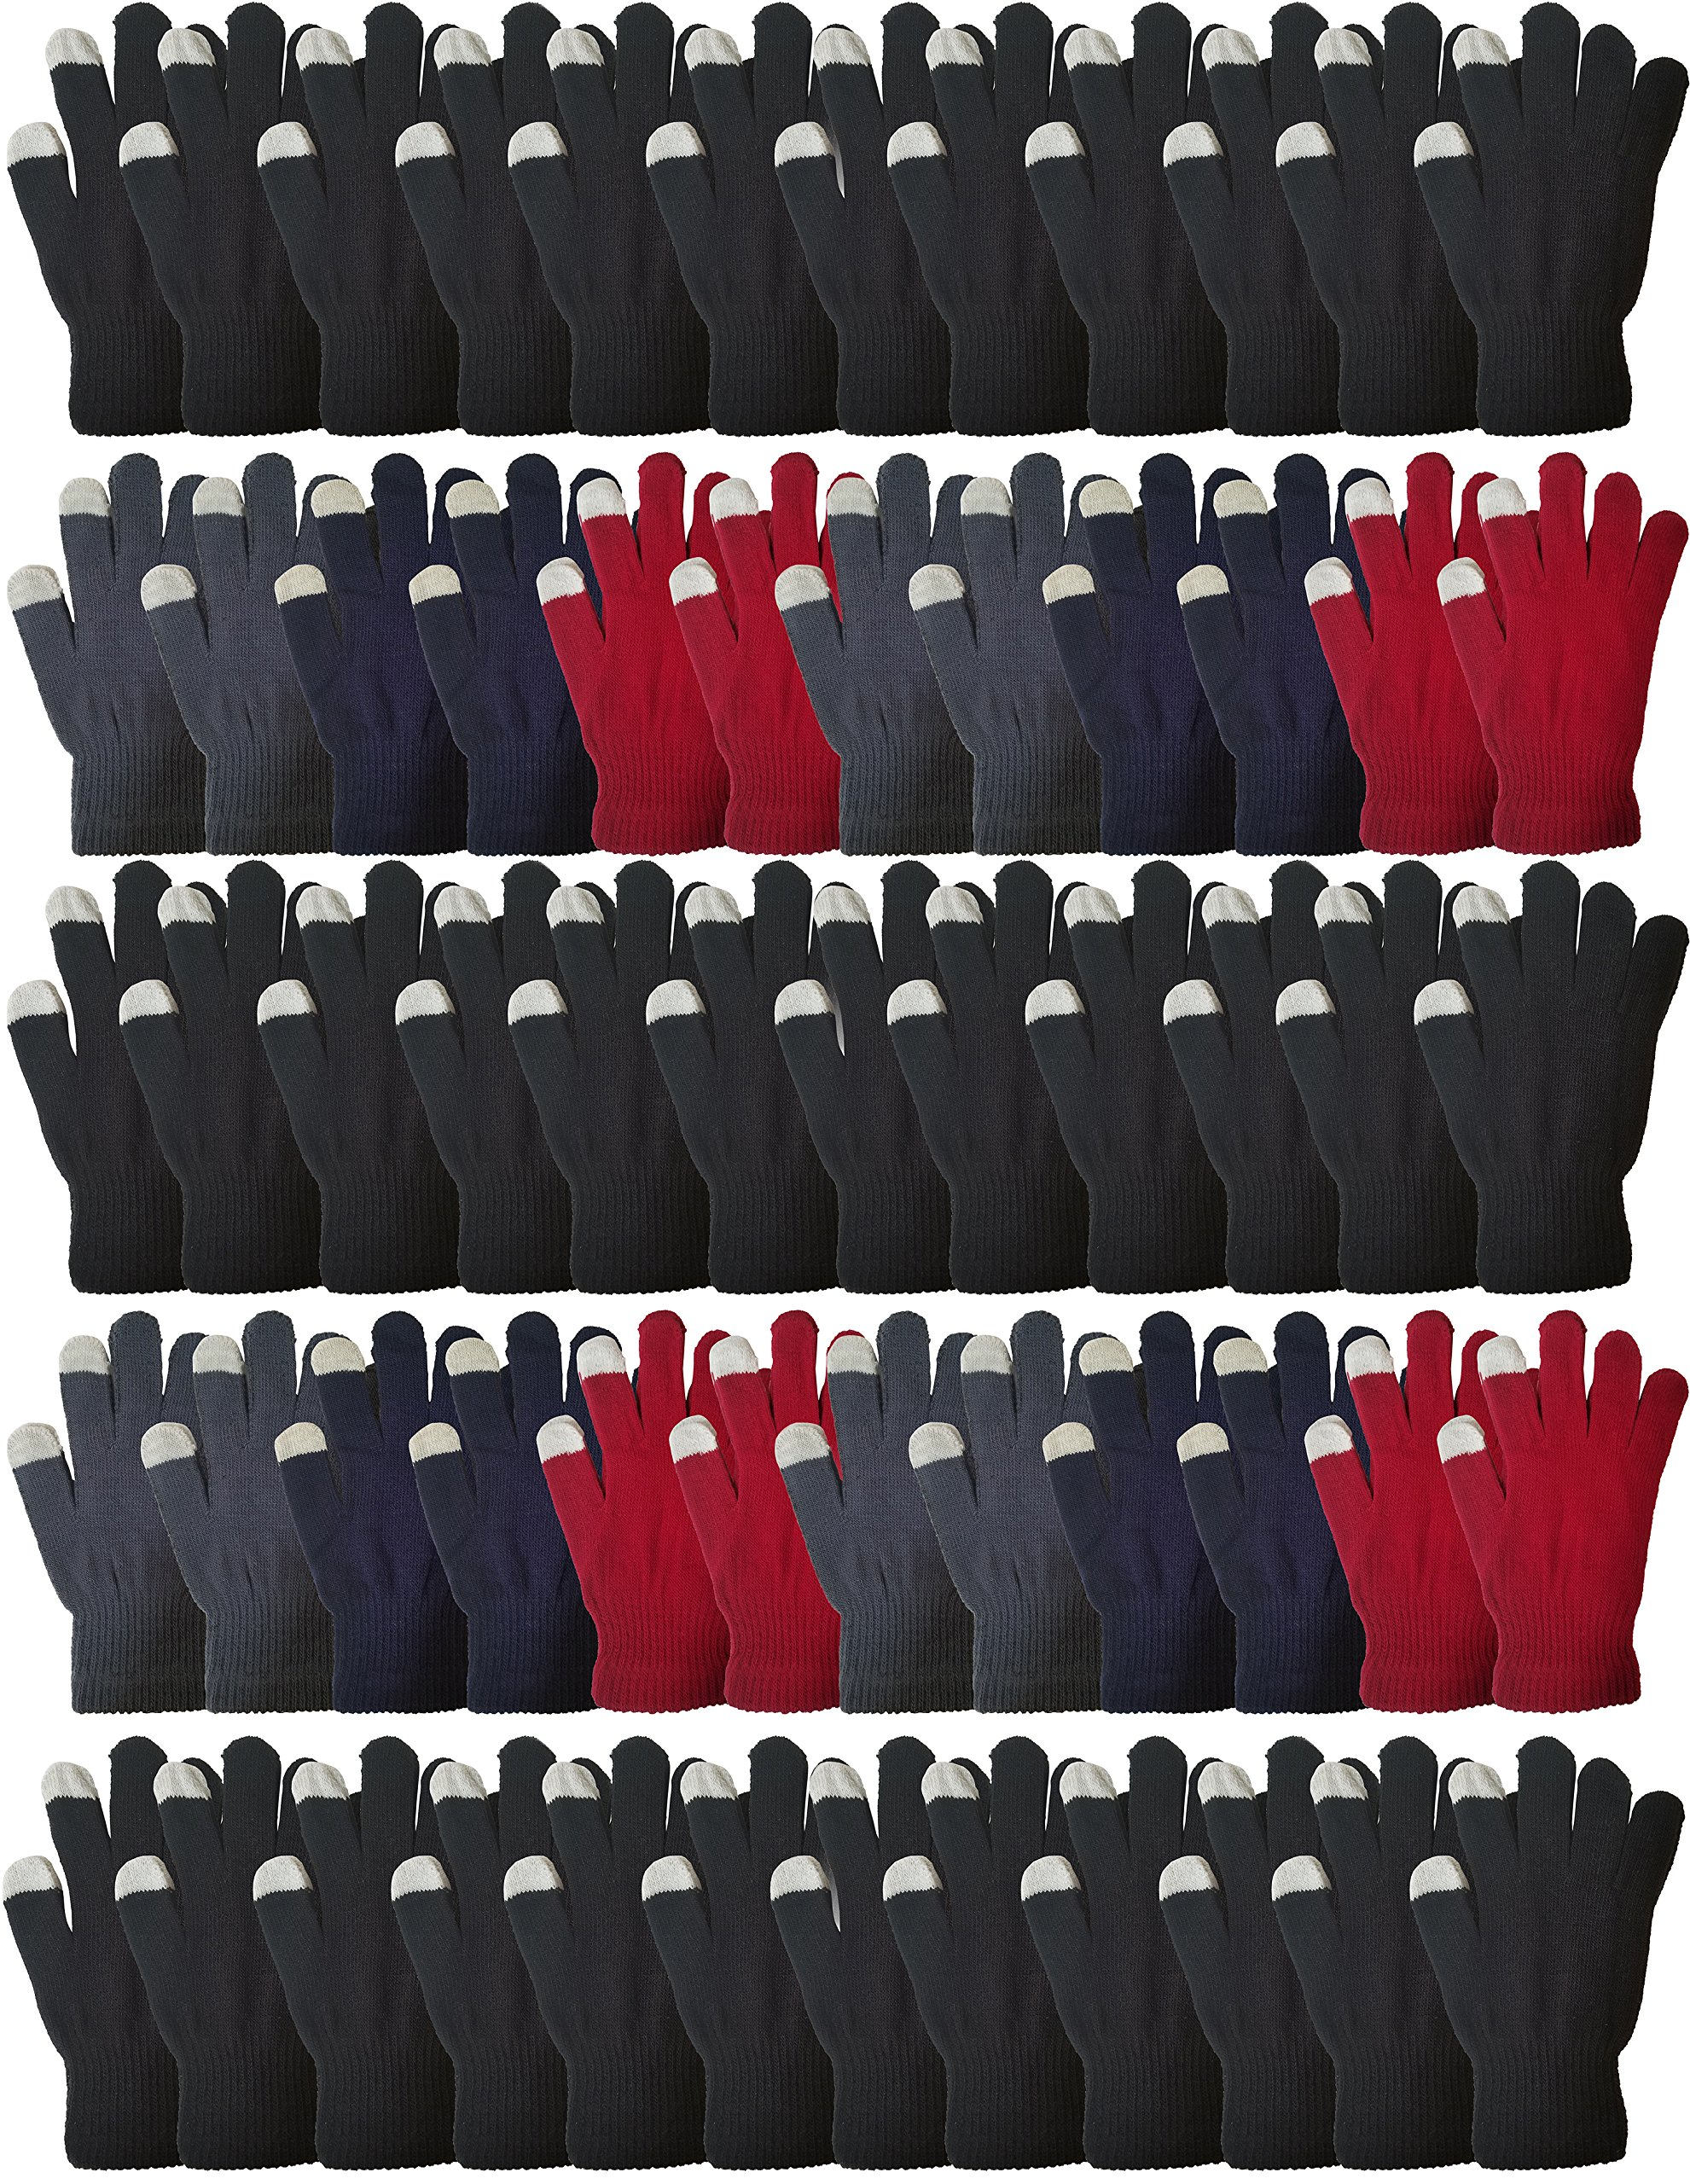 72 Pairs Wholesale Touch Screen Winter Gloves, Soft Stretchy and Warm Bulk Pack Magic Glove, Mens and Womens (Assorted, 72)